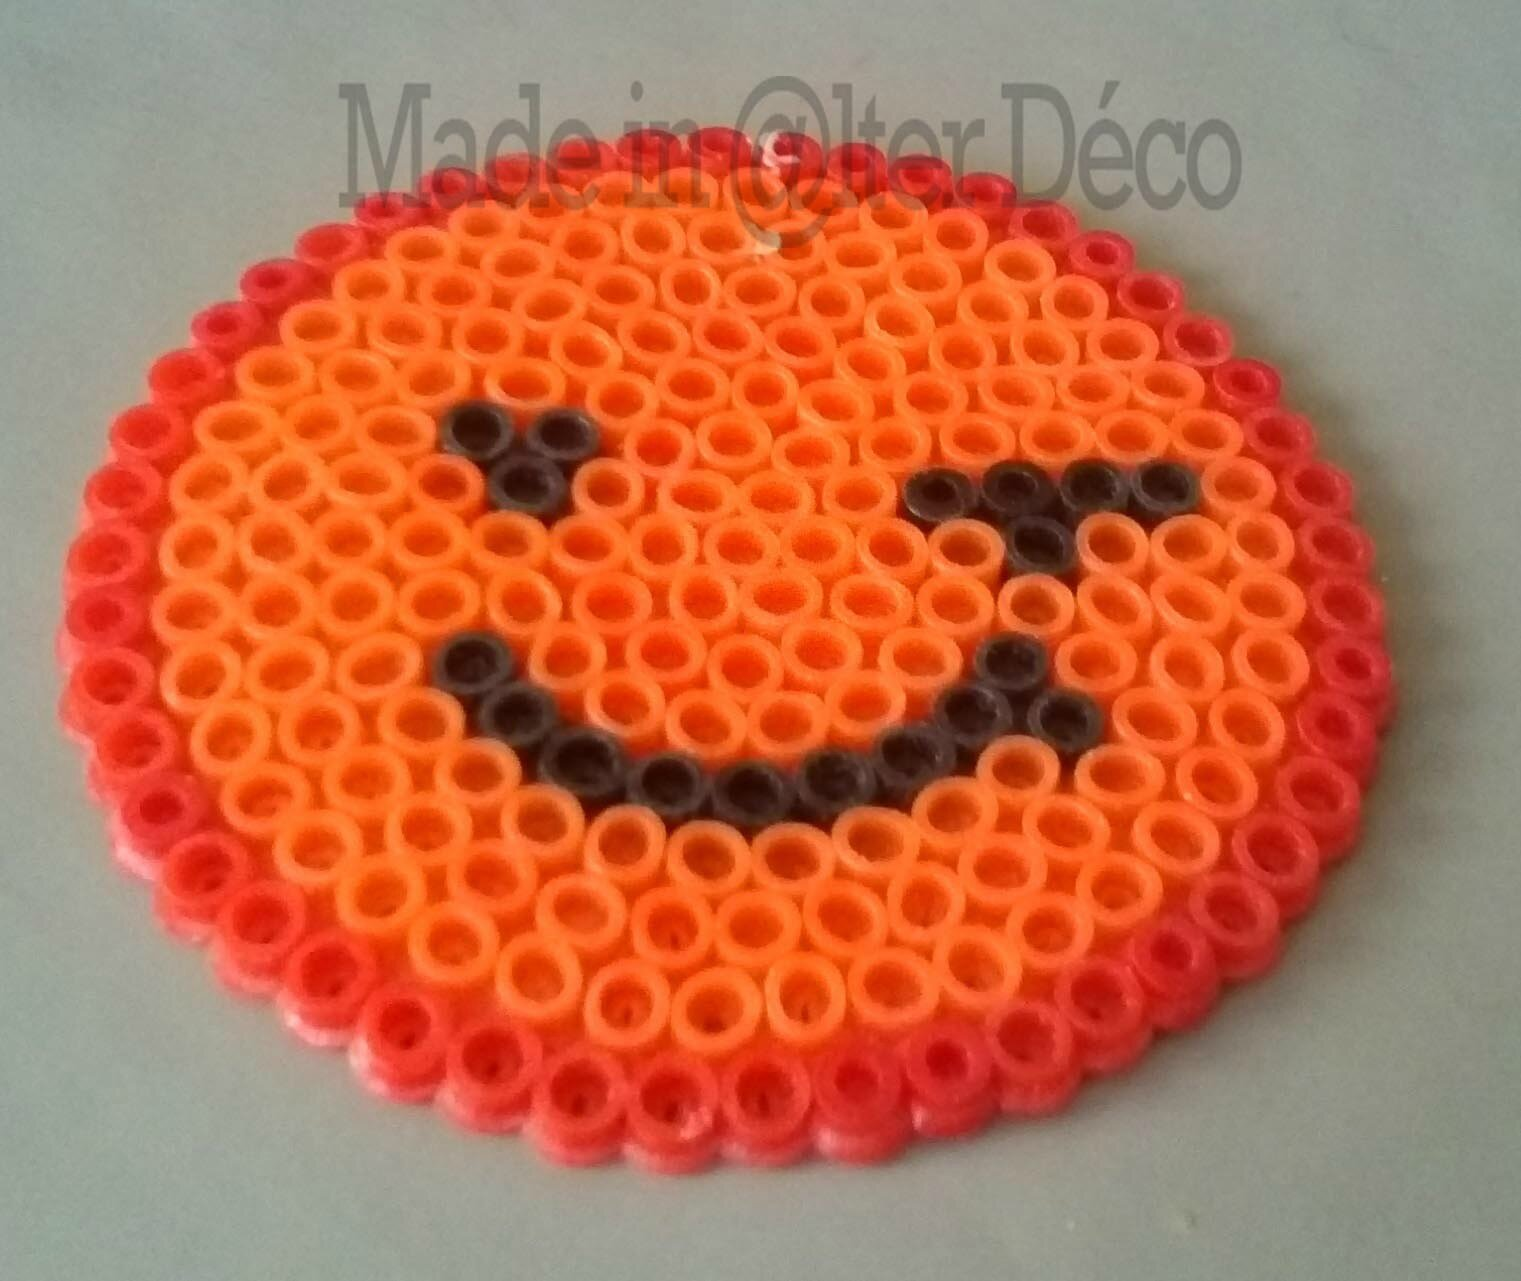 Smiley clin d 39 oeil en perles repasser photo de atelier - Perle a repasser smiley ...